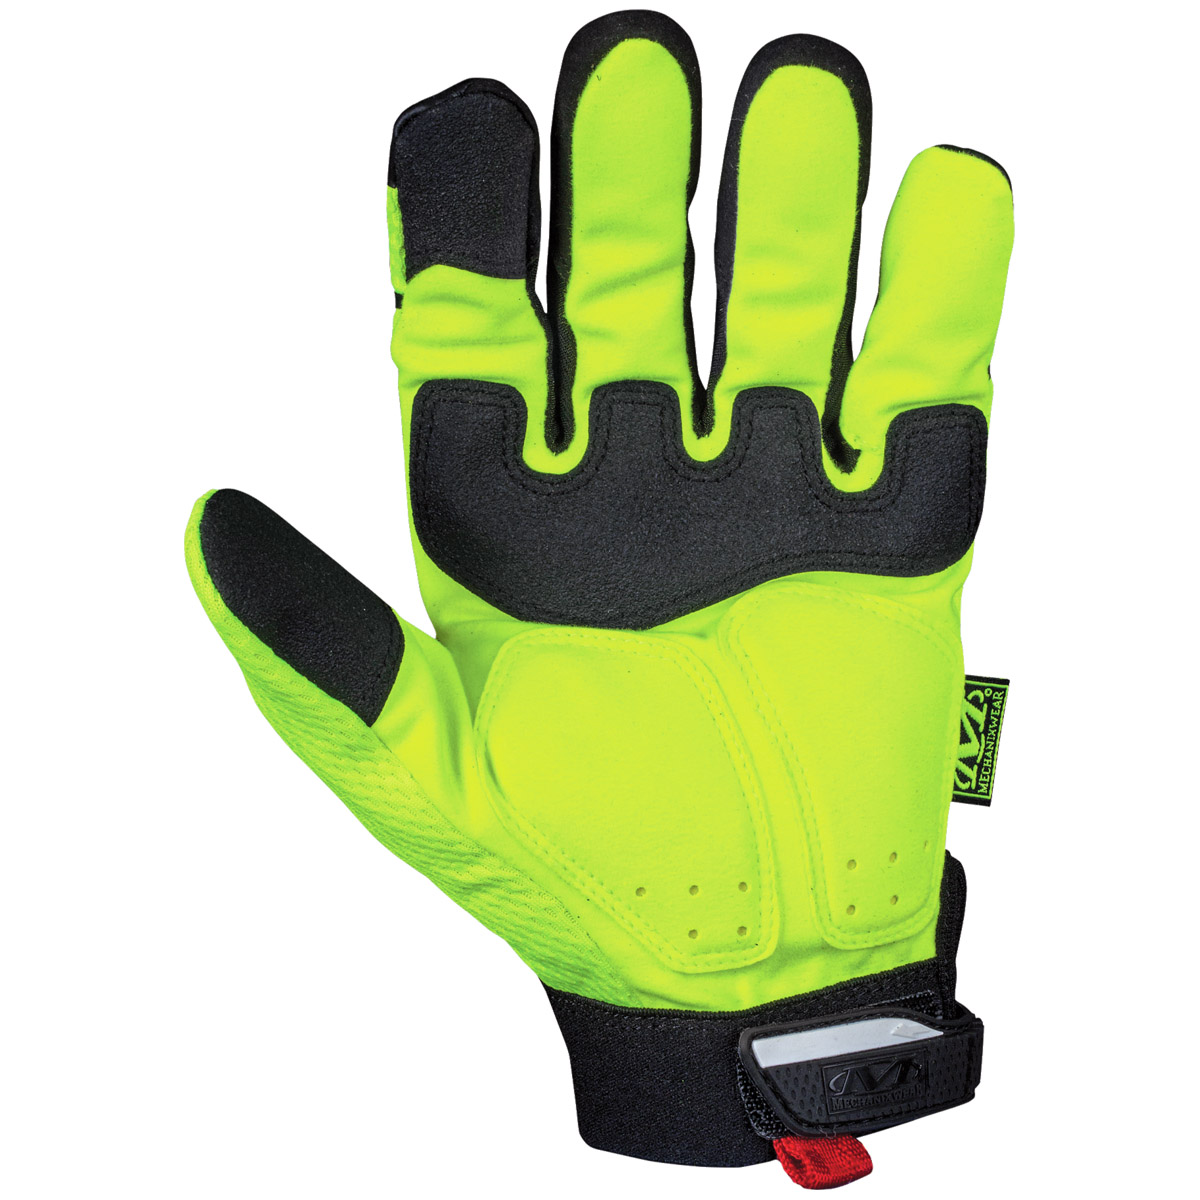 Mens yellow gloves - Sentinel Mechanix Wear The Safety M Pact Hi Viz Work Mens Gloves Impact Protection Yellow